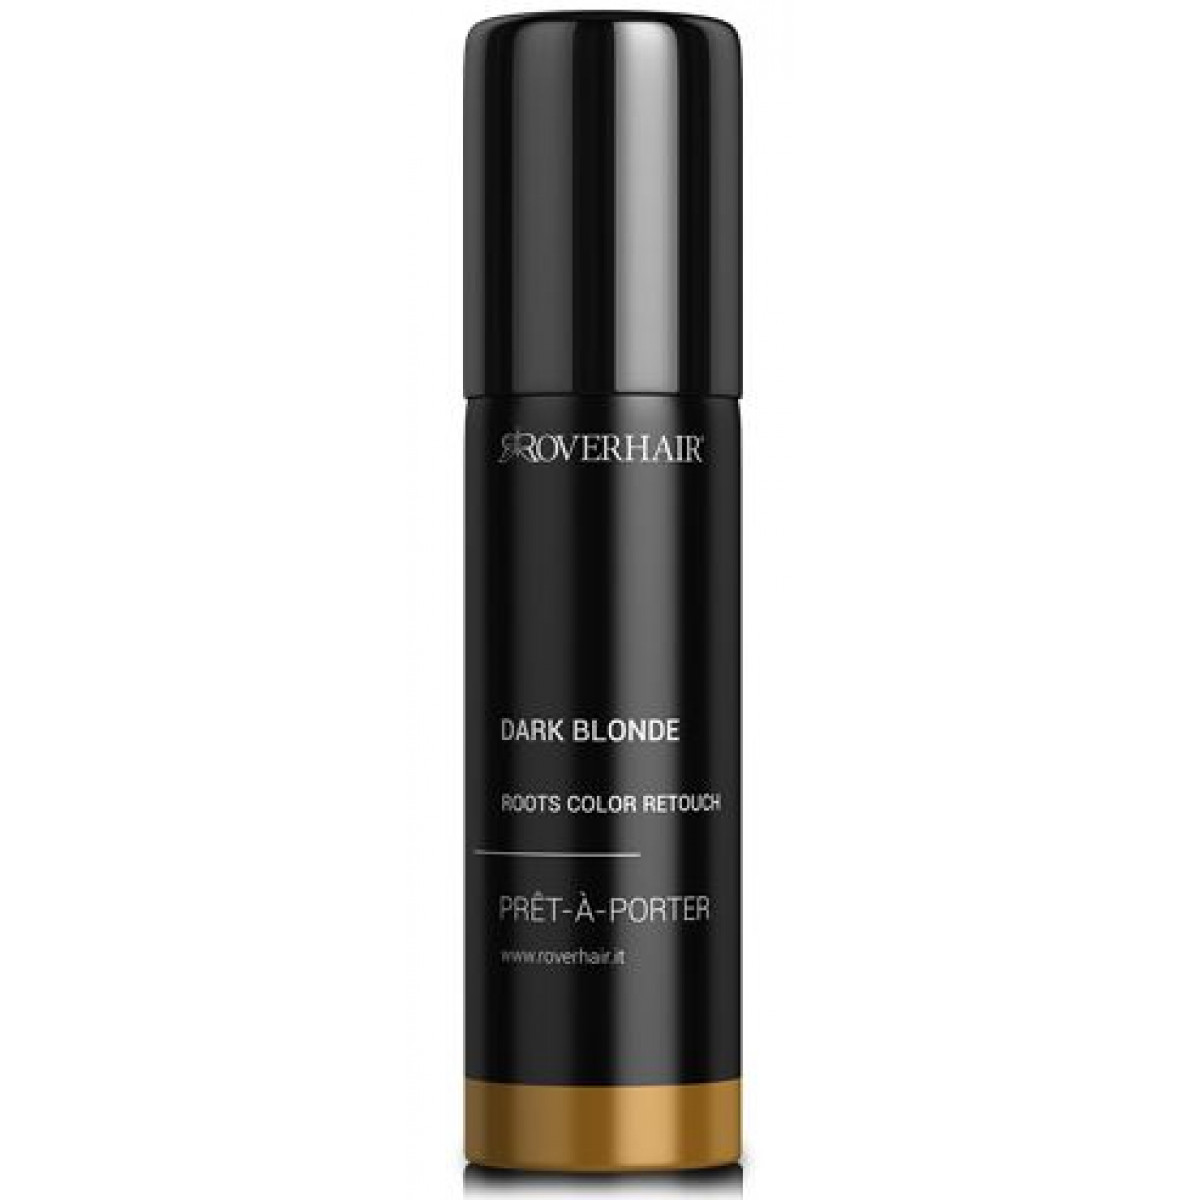 Roverhair Roots Color Retouch Spray Dark Blonde 75ml Image